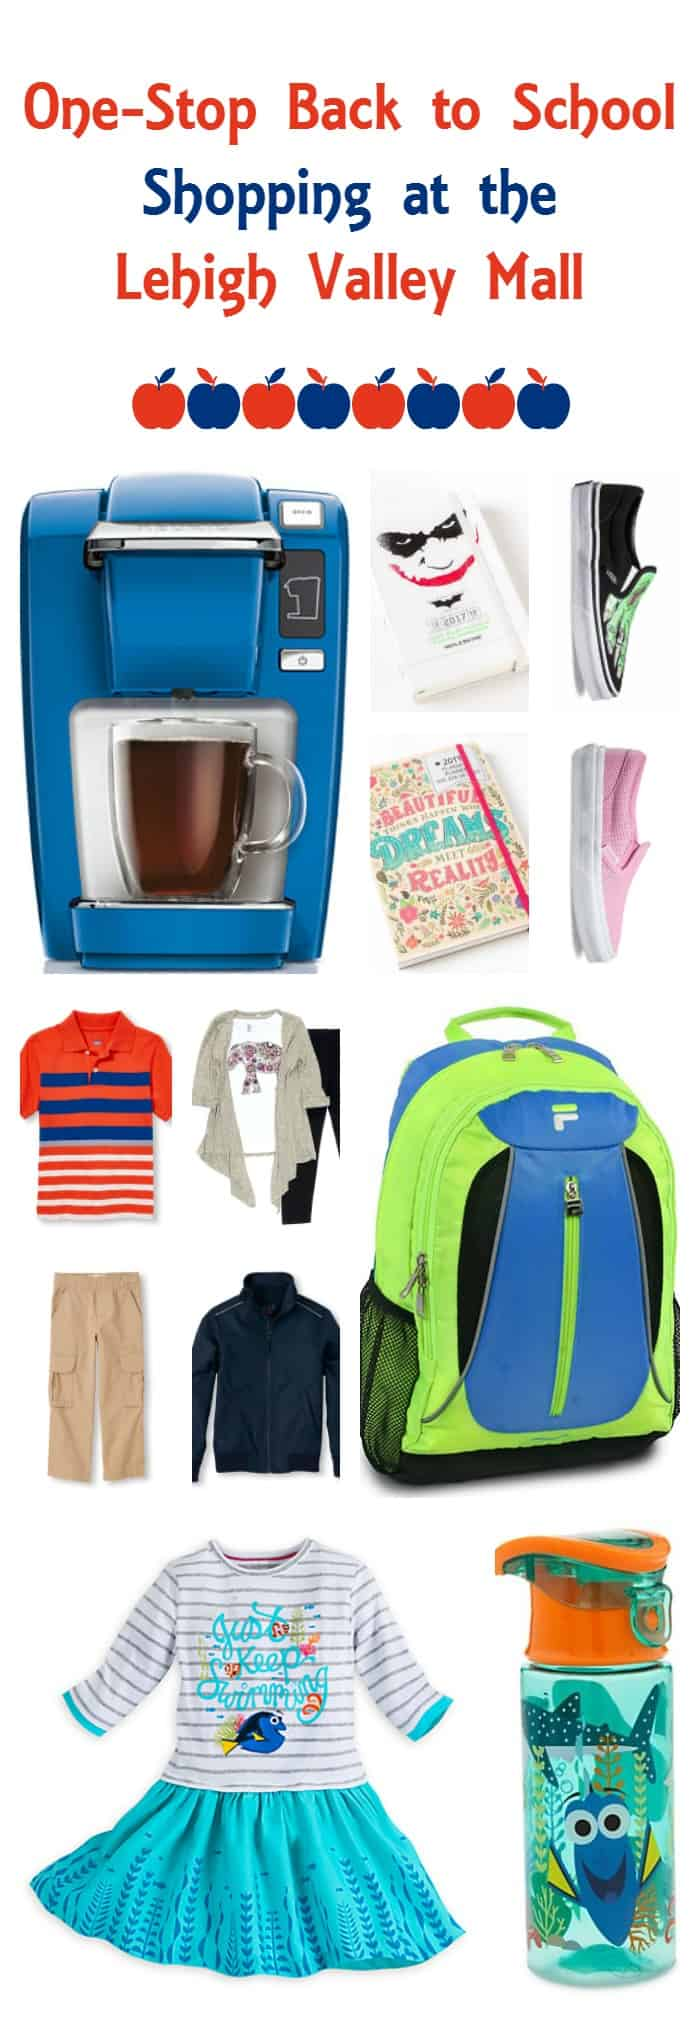 Still haven't finished back to school shopping? Find every last thing you need in one spot at the Lehigh Valley Mall!